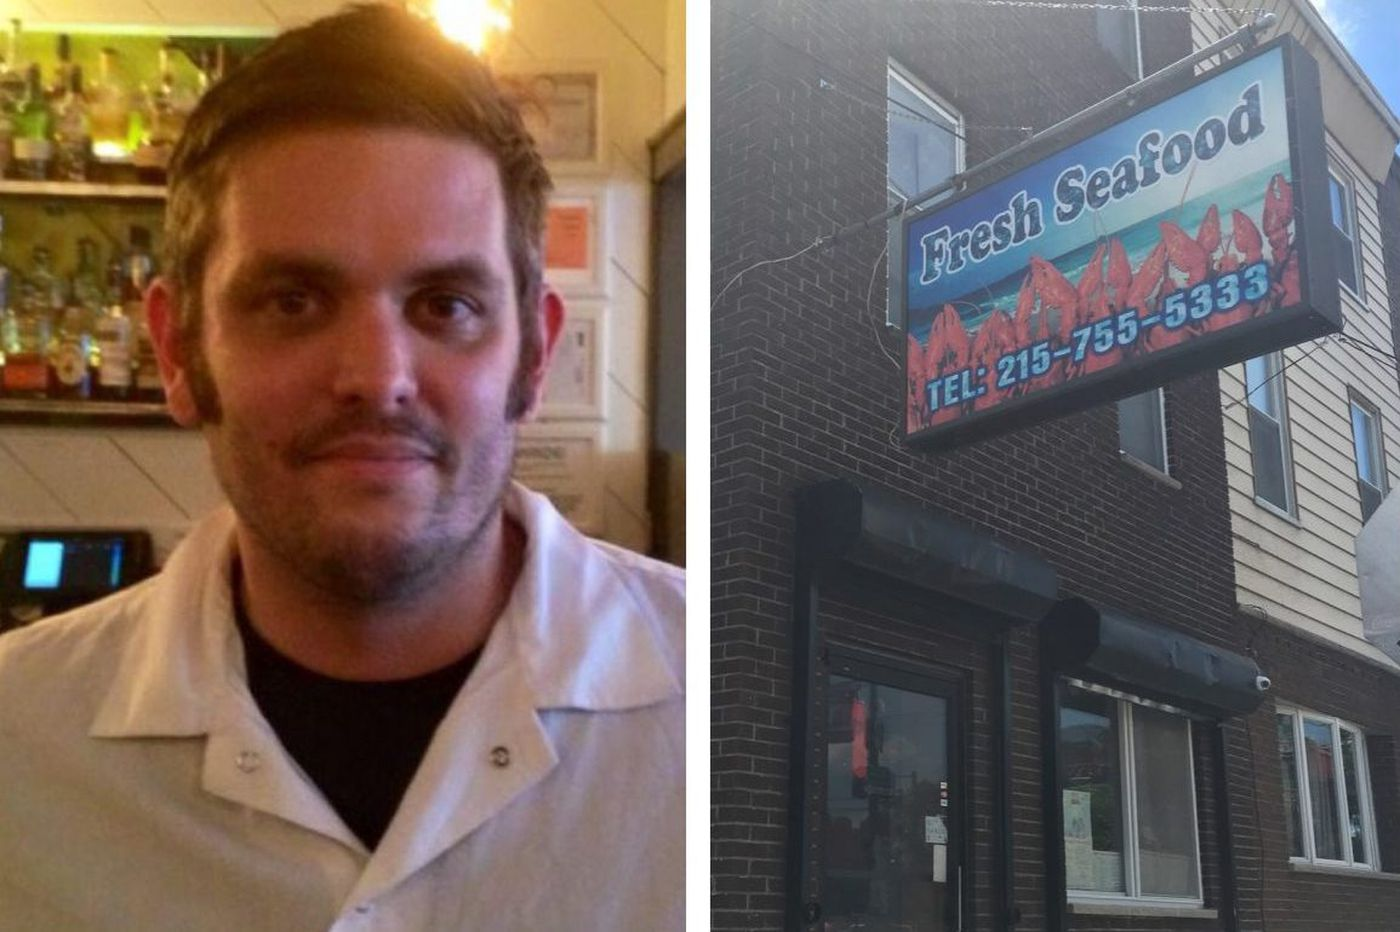 Redcrest, a fried-chicken shop, signed for East Passyunk